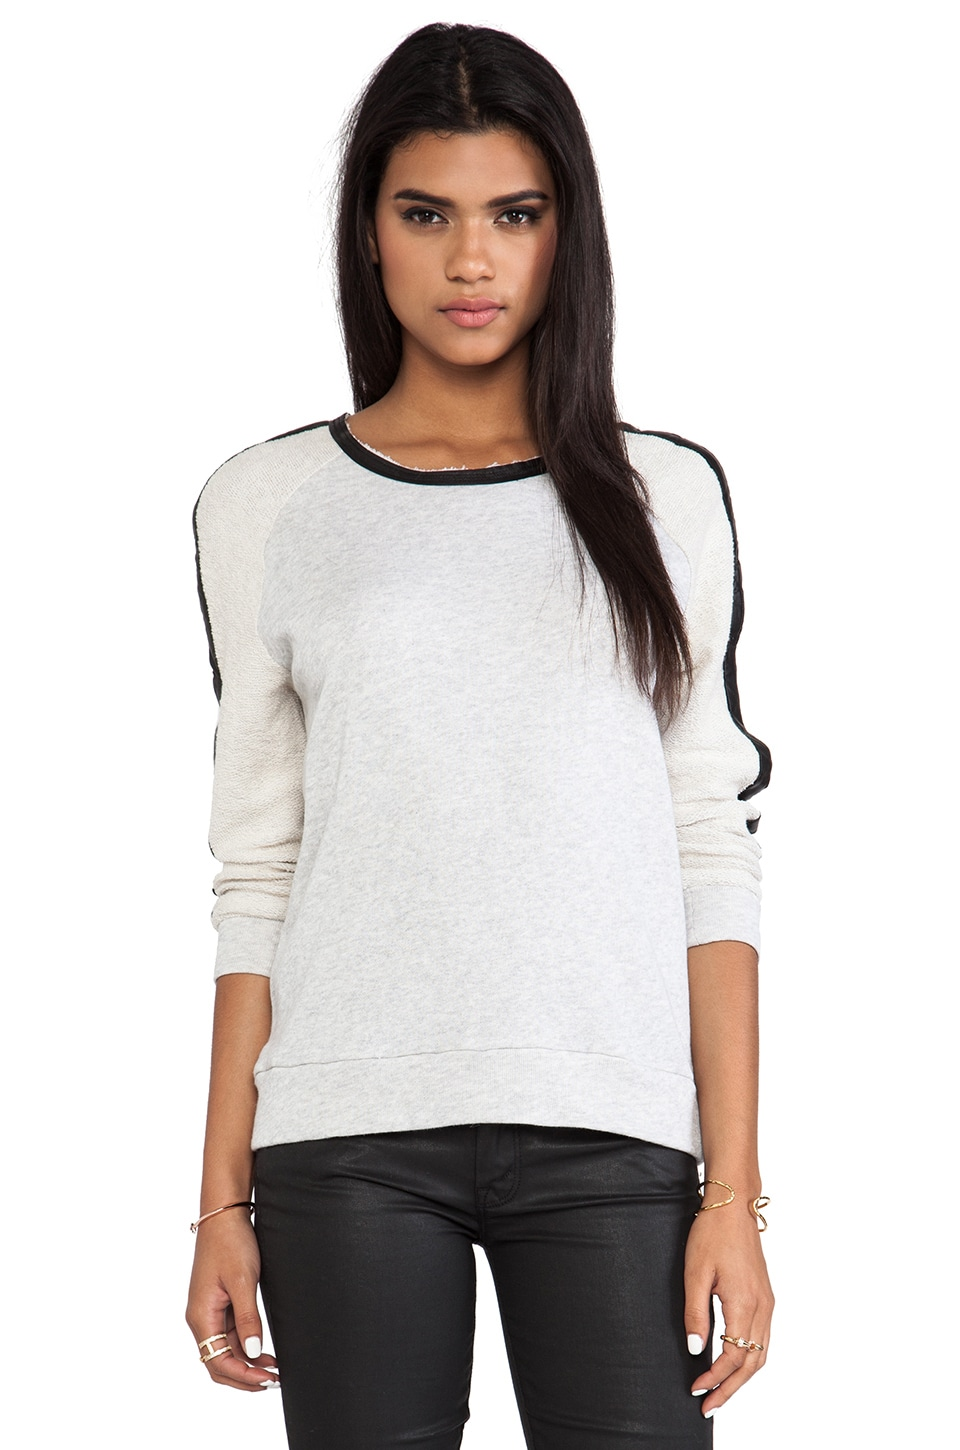 TOWNSEN Stillwater Pullover in Light Heather Grey